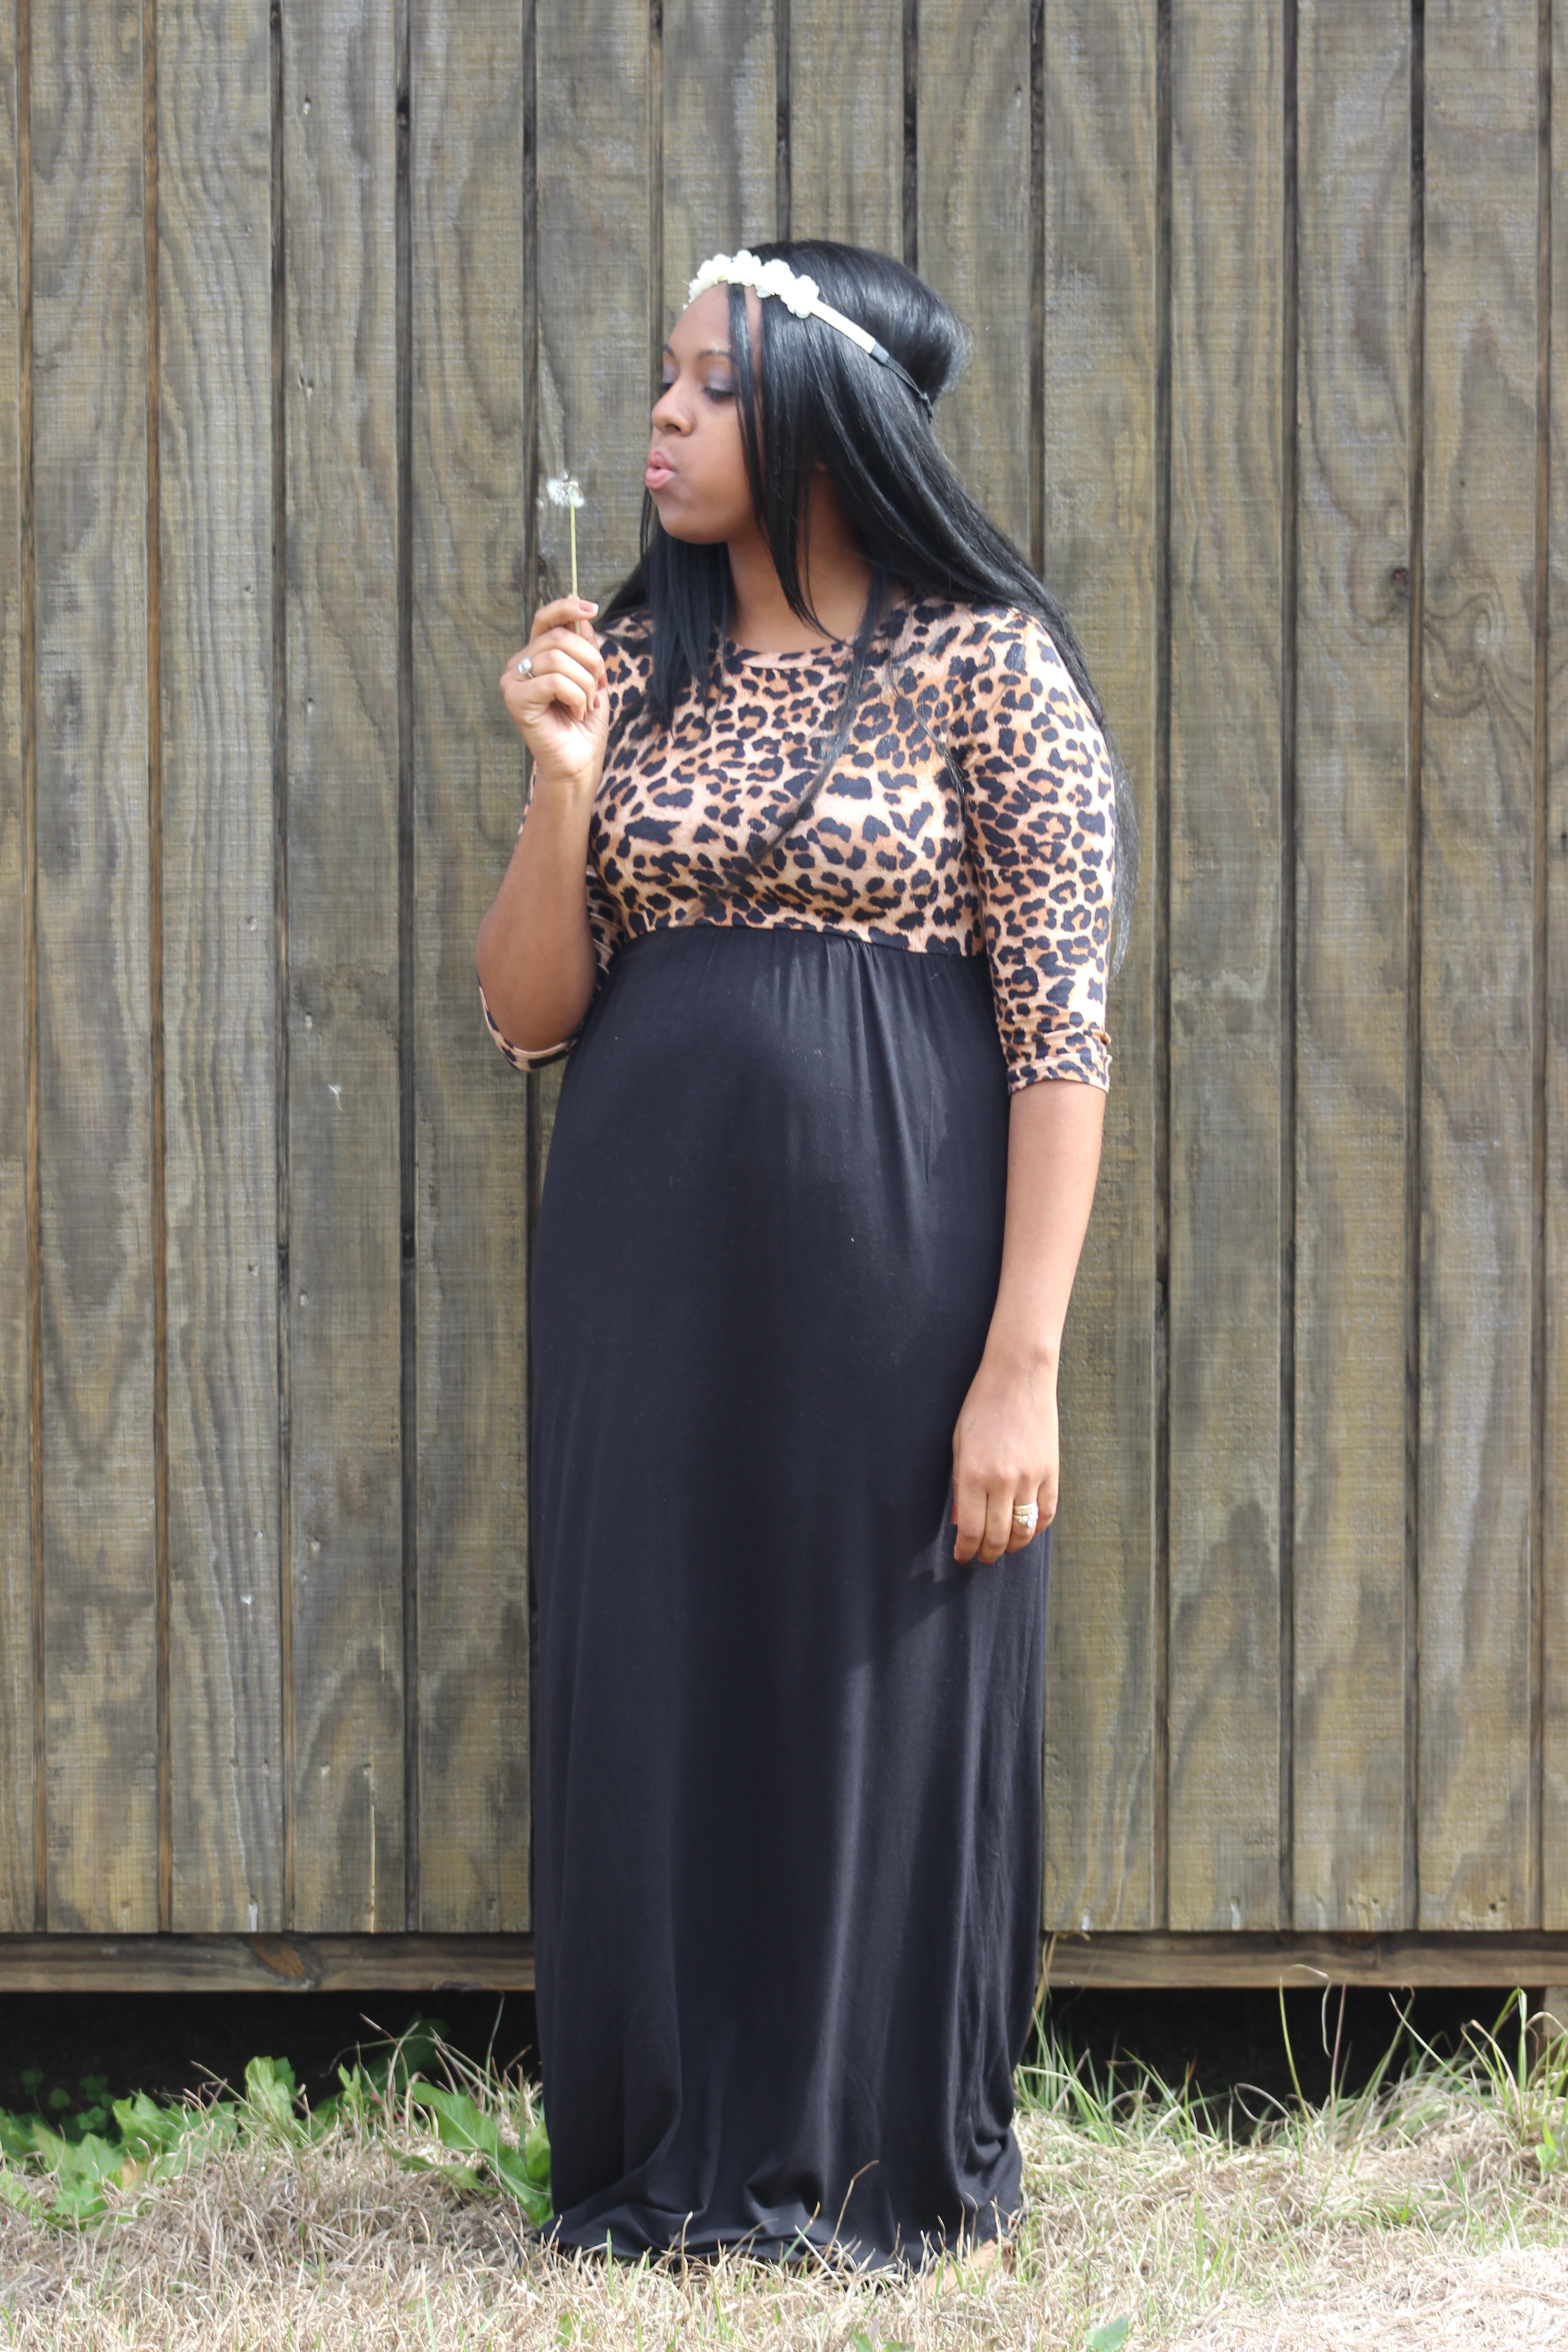 c60d9d3a383 What if you could find maternity clothes that make you feel confident and  beautiful  Here